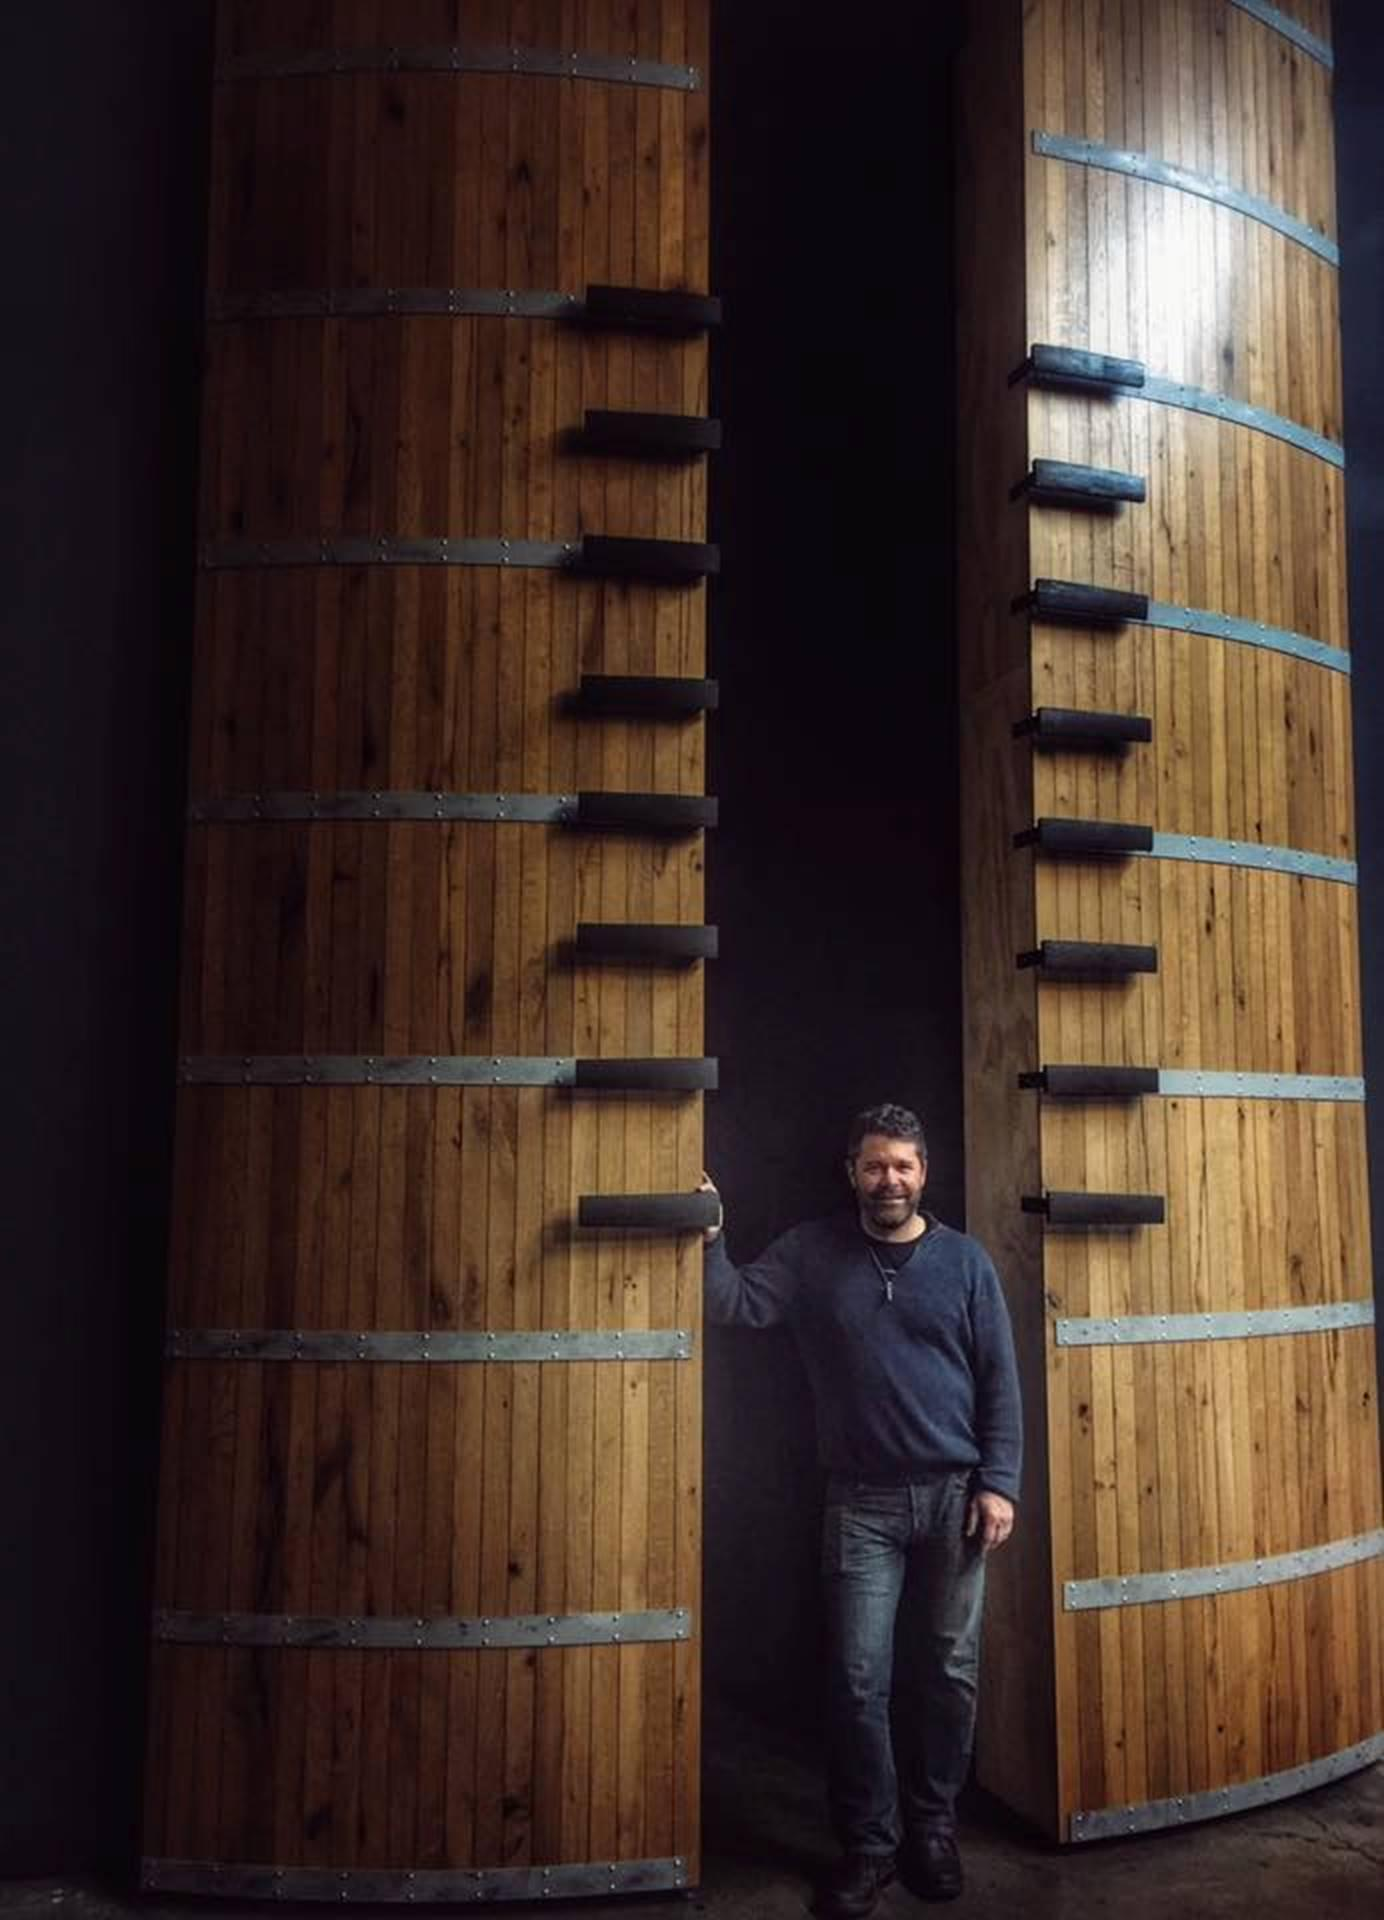 Chris Peterson, pictured in the Passing Time winery with their distinctive football-themed backdrop